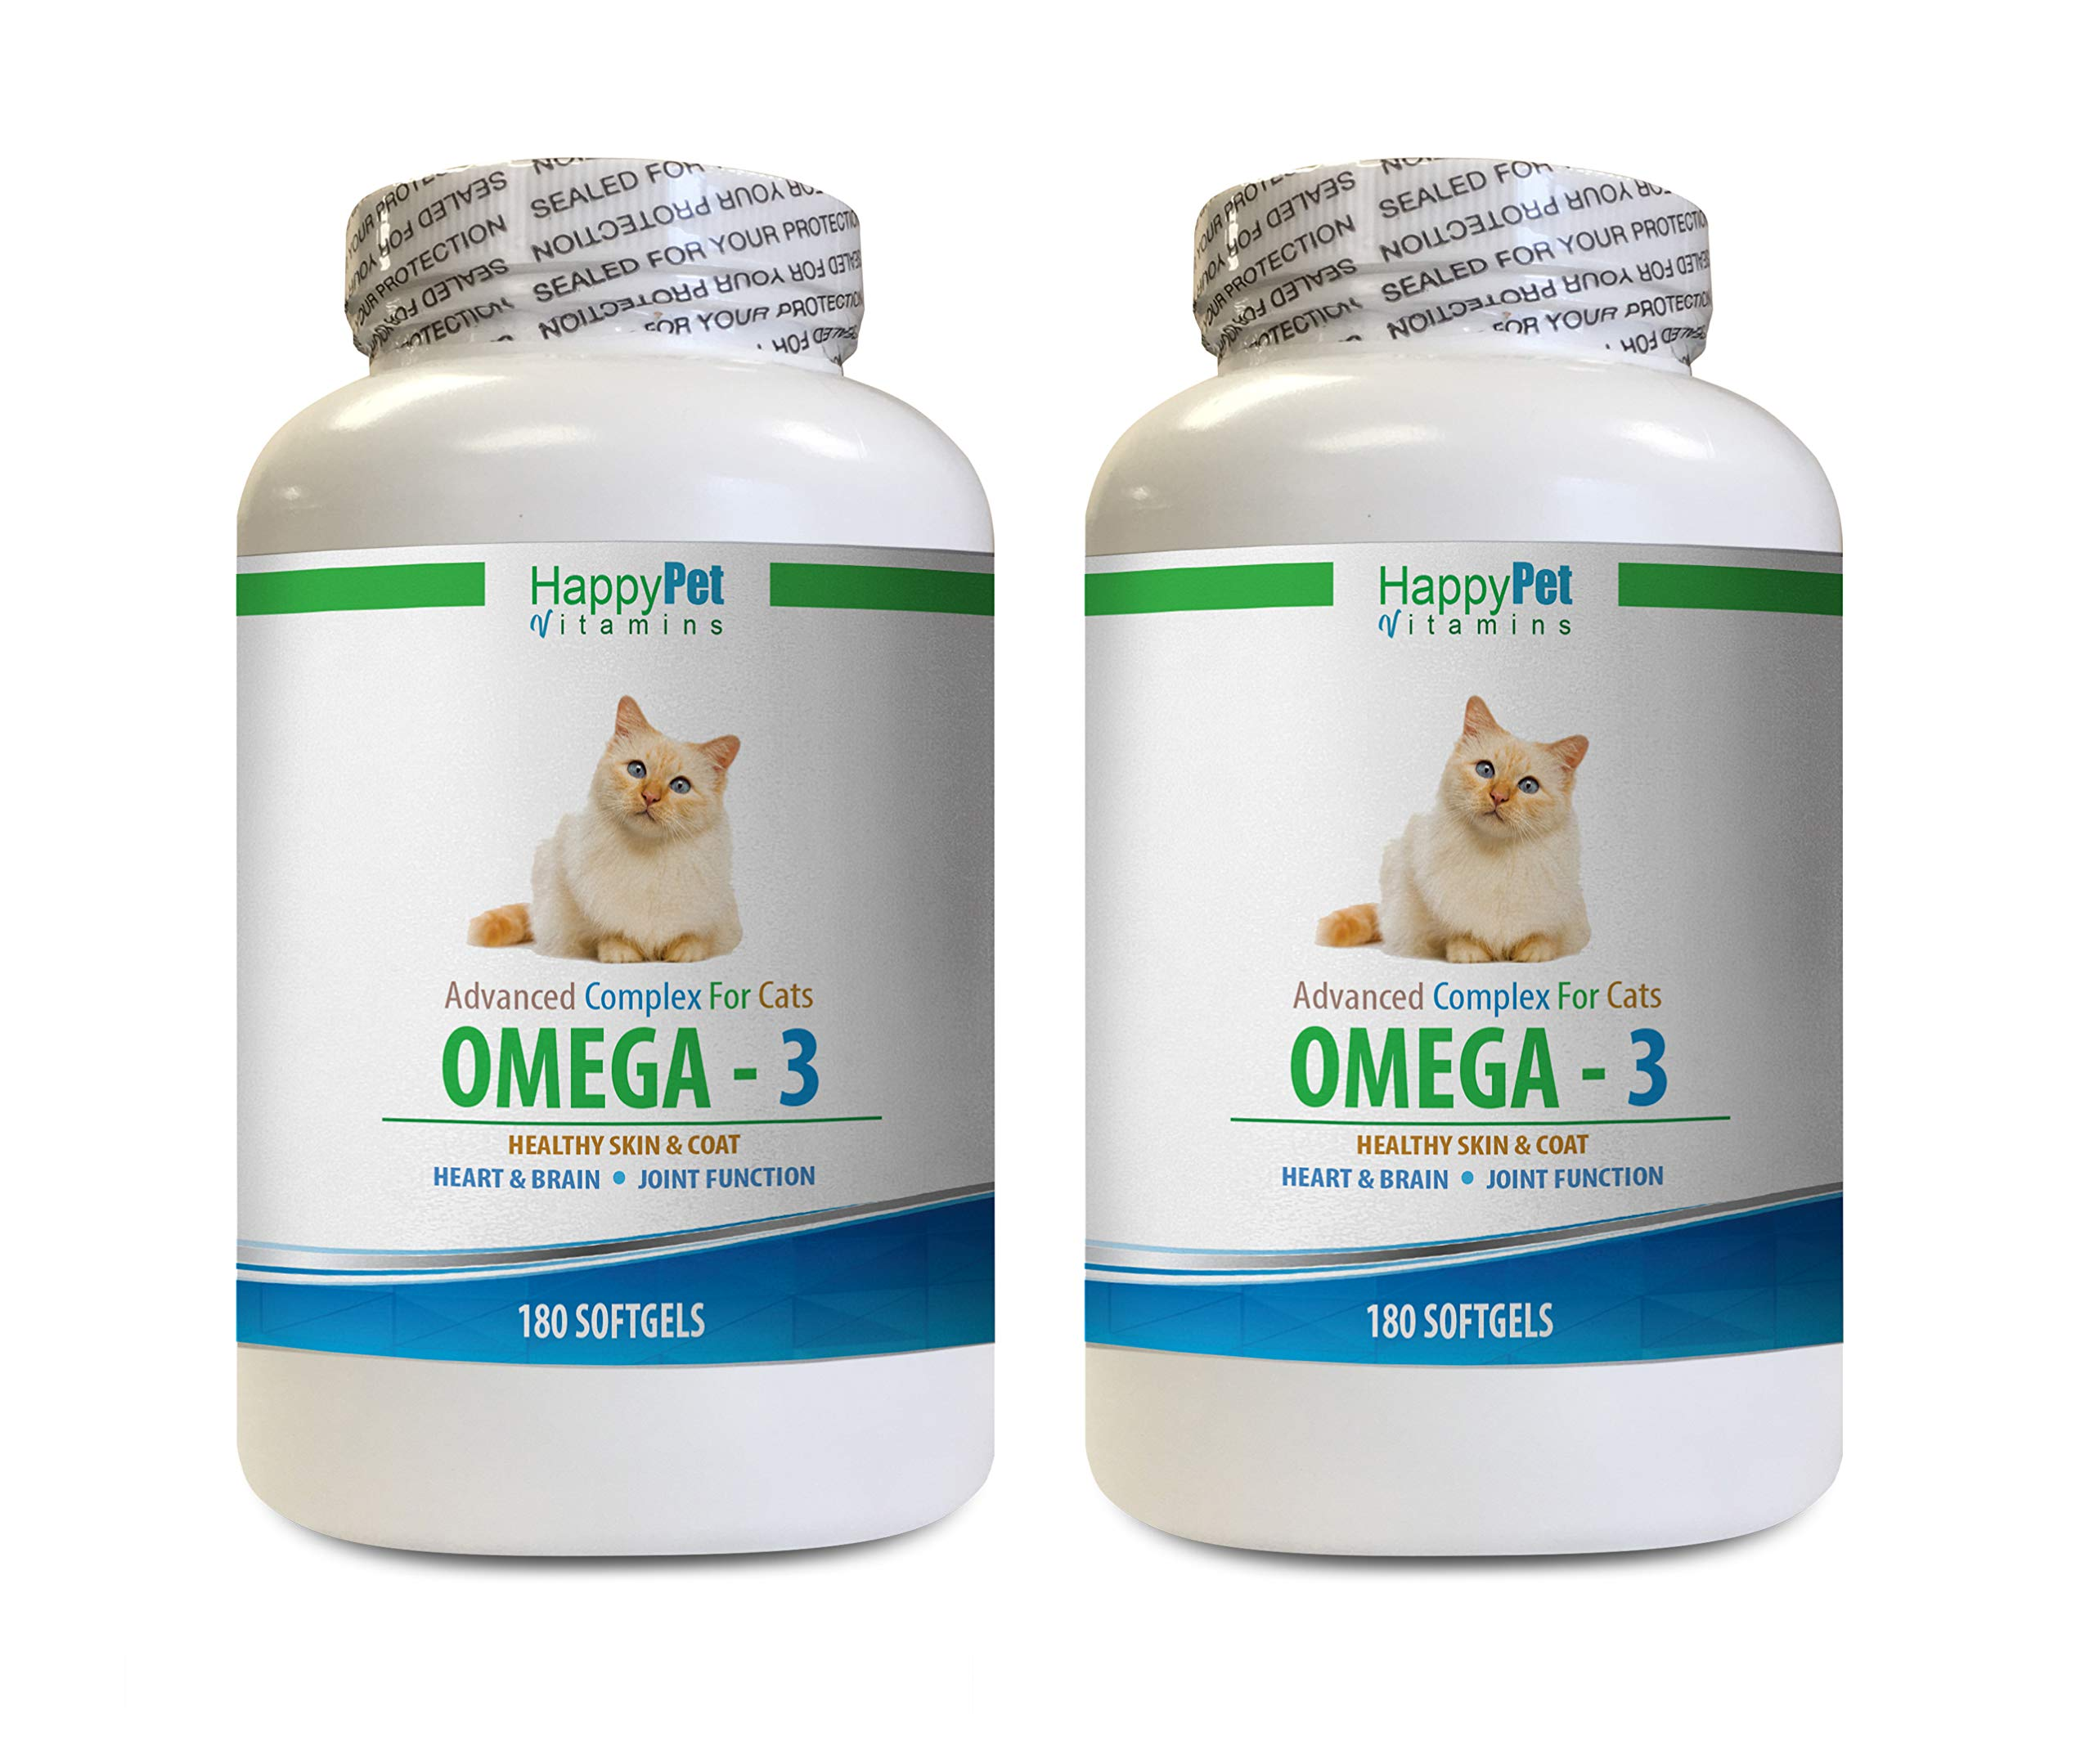 cat Joint Pain - CAT Omega 3 Fatty ACIDS - Essential - Support Cats Health - Omega 3 for Cats - 2 Bottles (360 Softgels) by HAPPY PET VITAMINS LLC